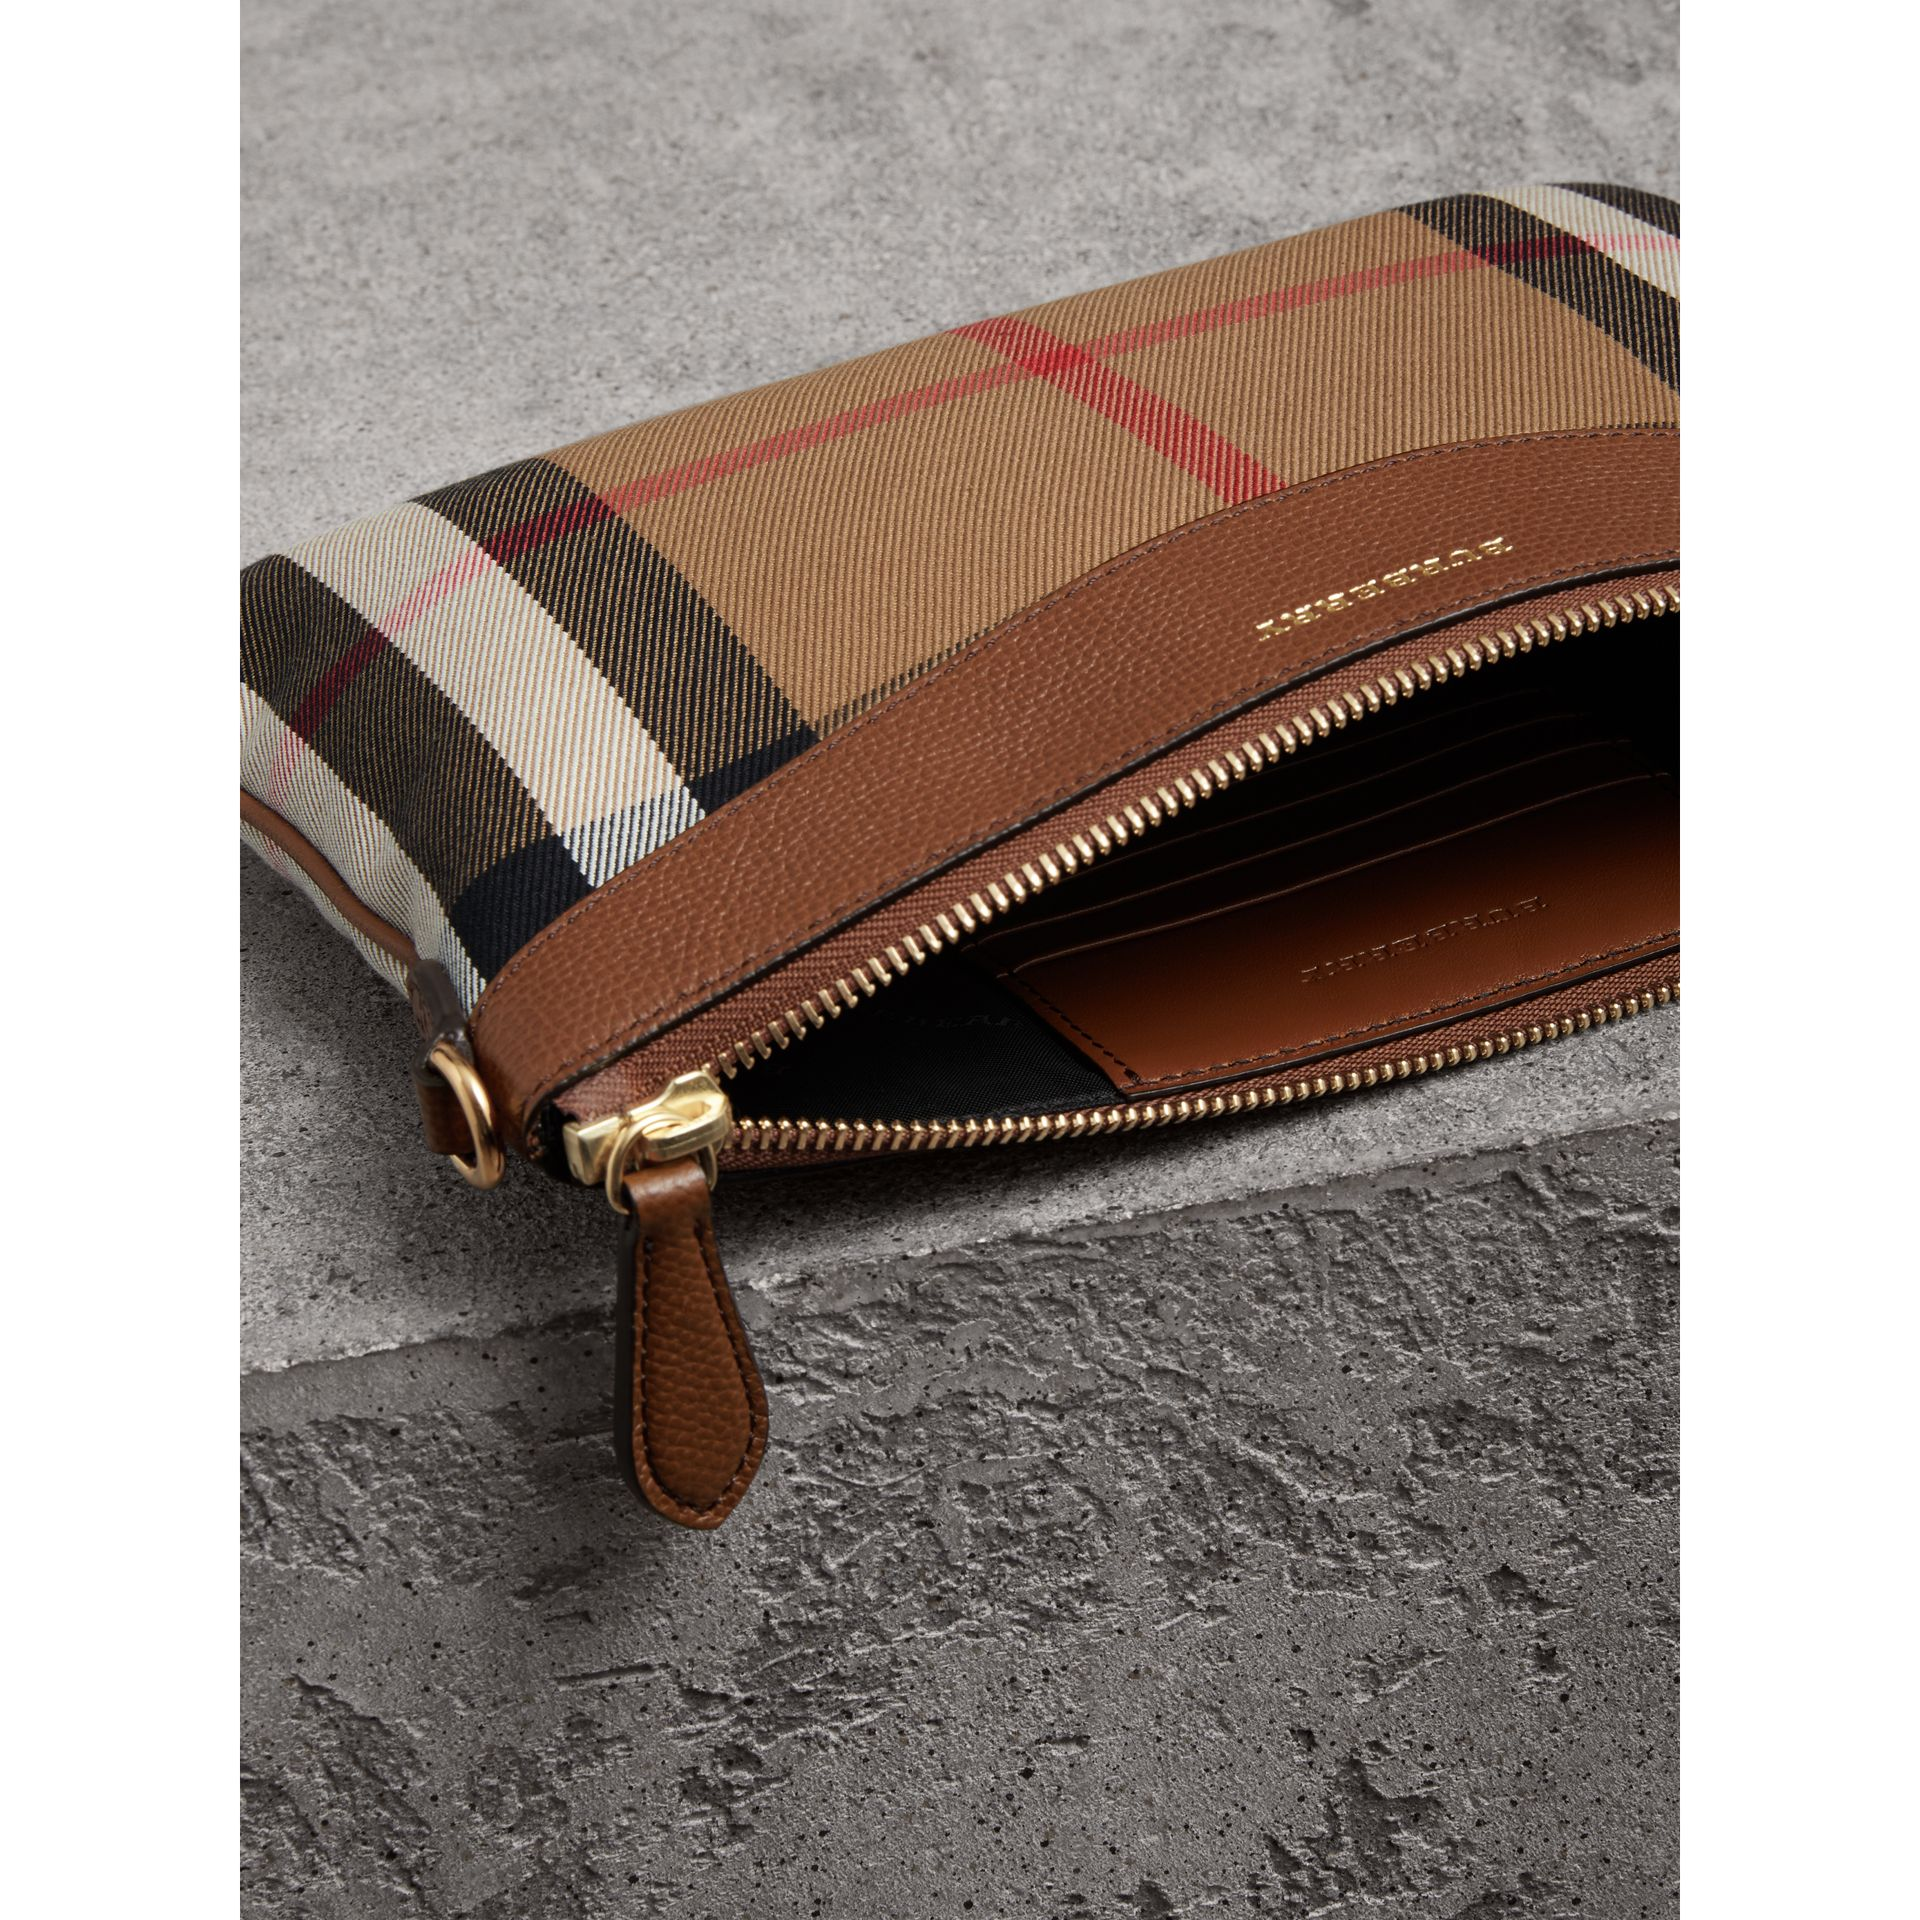 House Check and Leather Clutch Bag in Tan - Women | Burberry Australia - gallery image 4